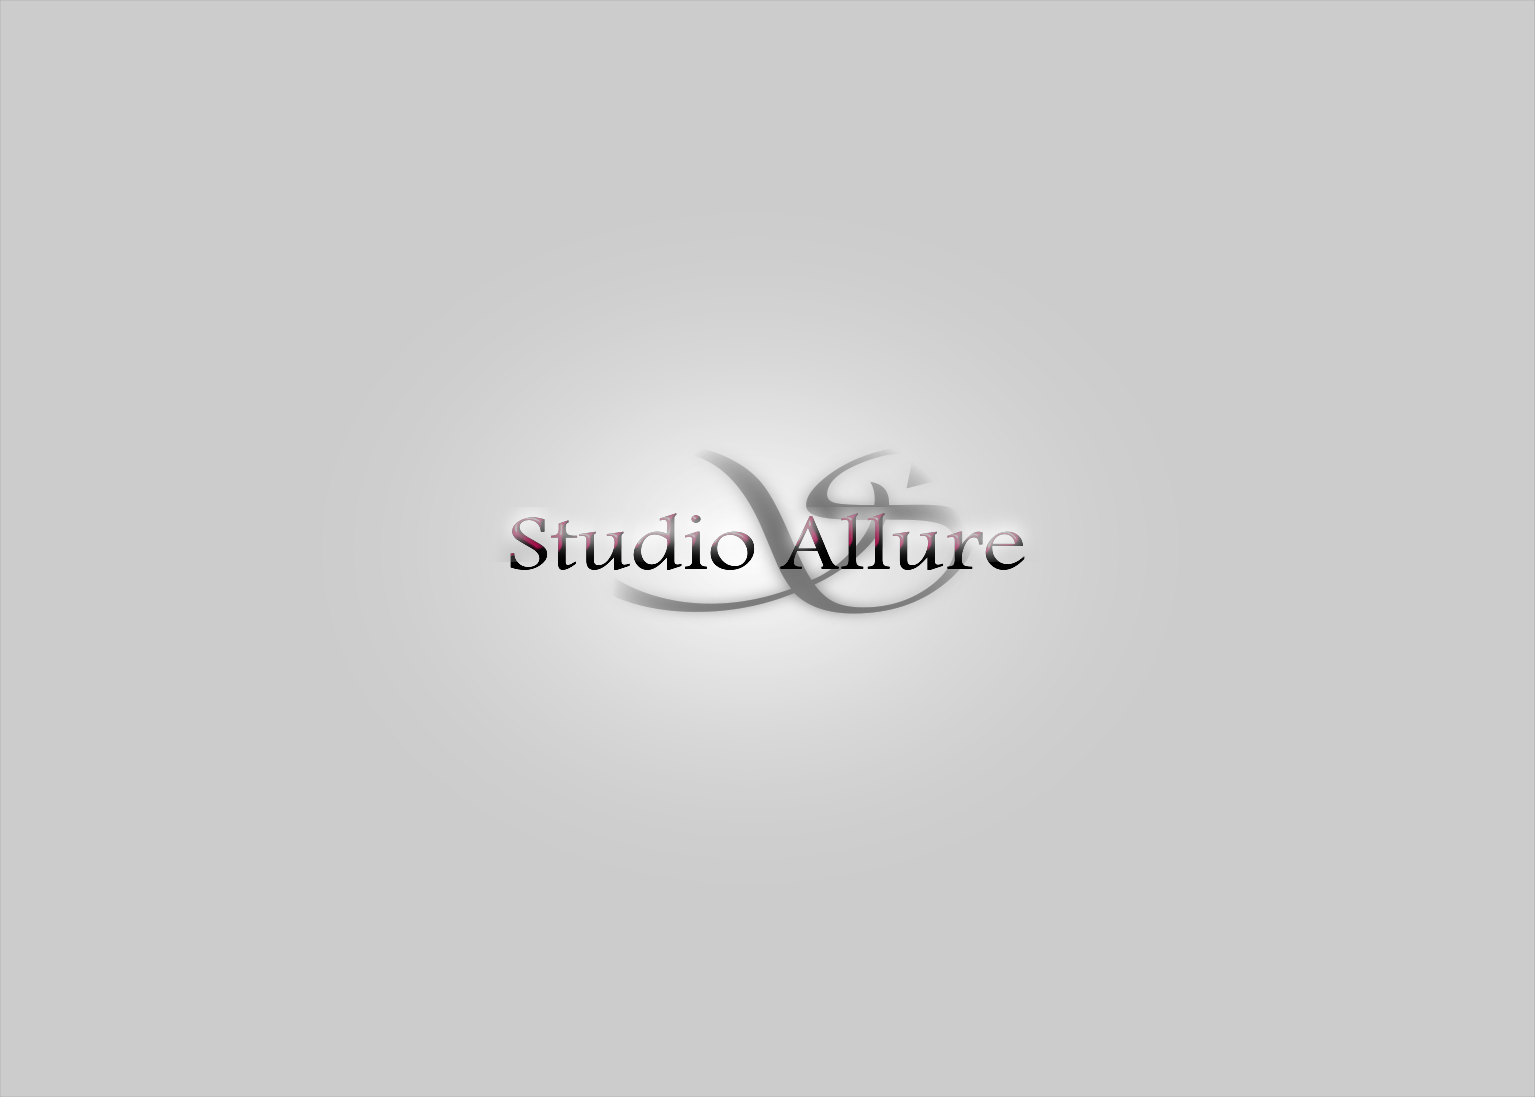 Logo Design by Joseph calunsag Cagaanan - Entry No. 17 in the Logo Design Contest Logo Design Needed for Exciting New Company Studio Allure.